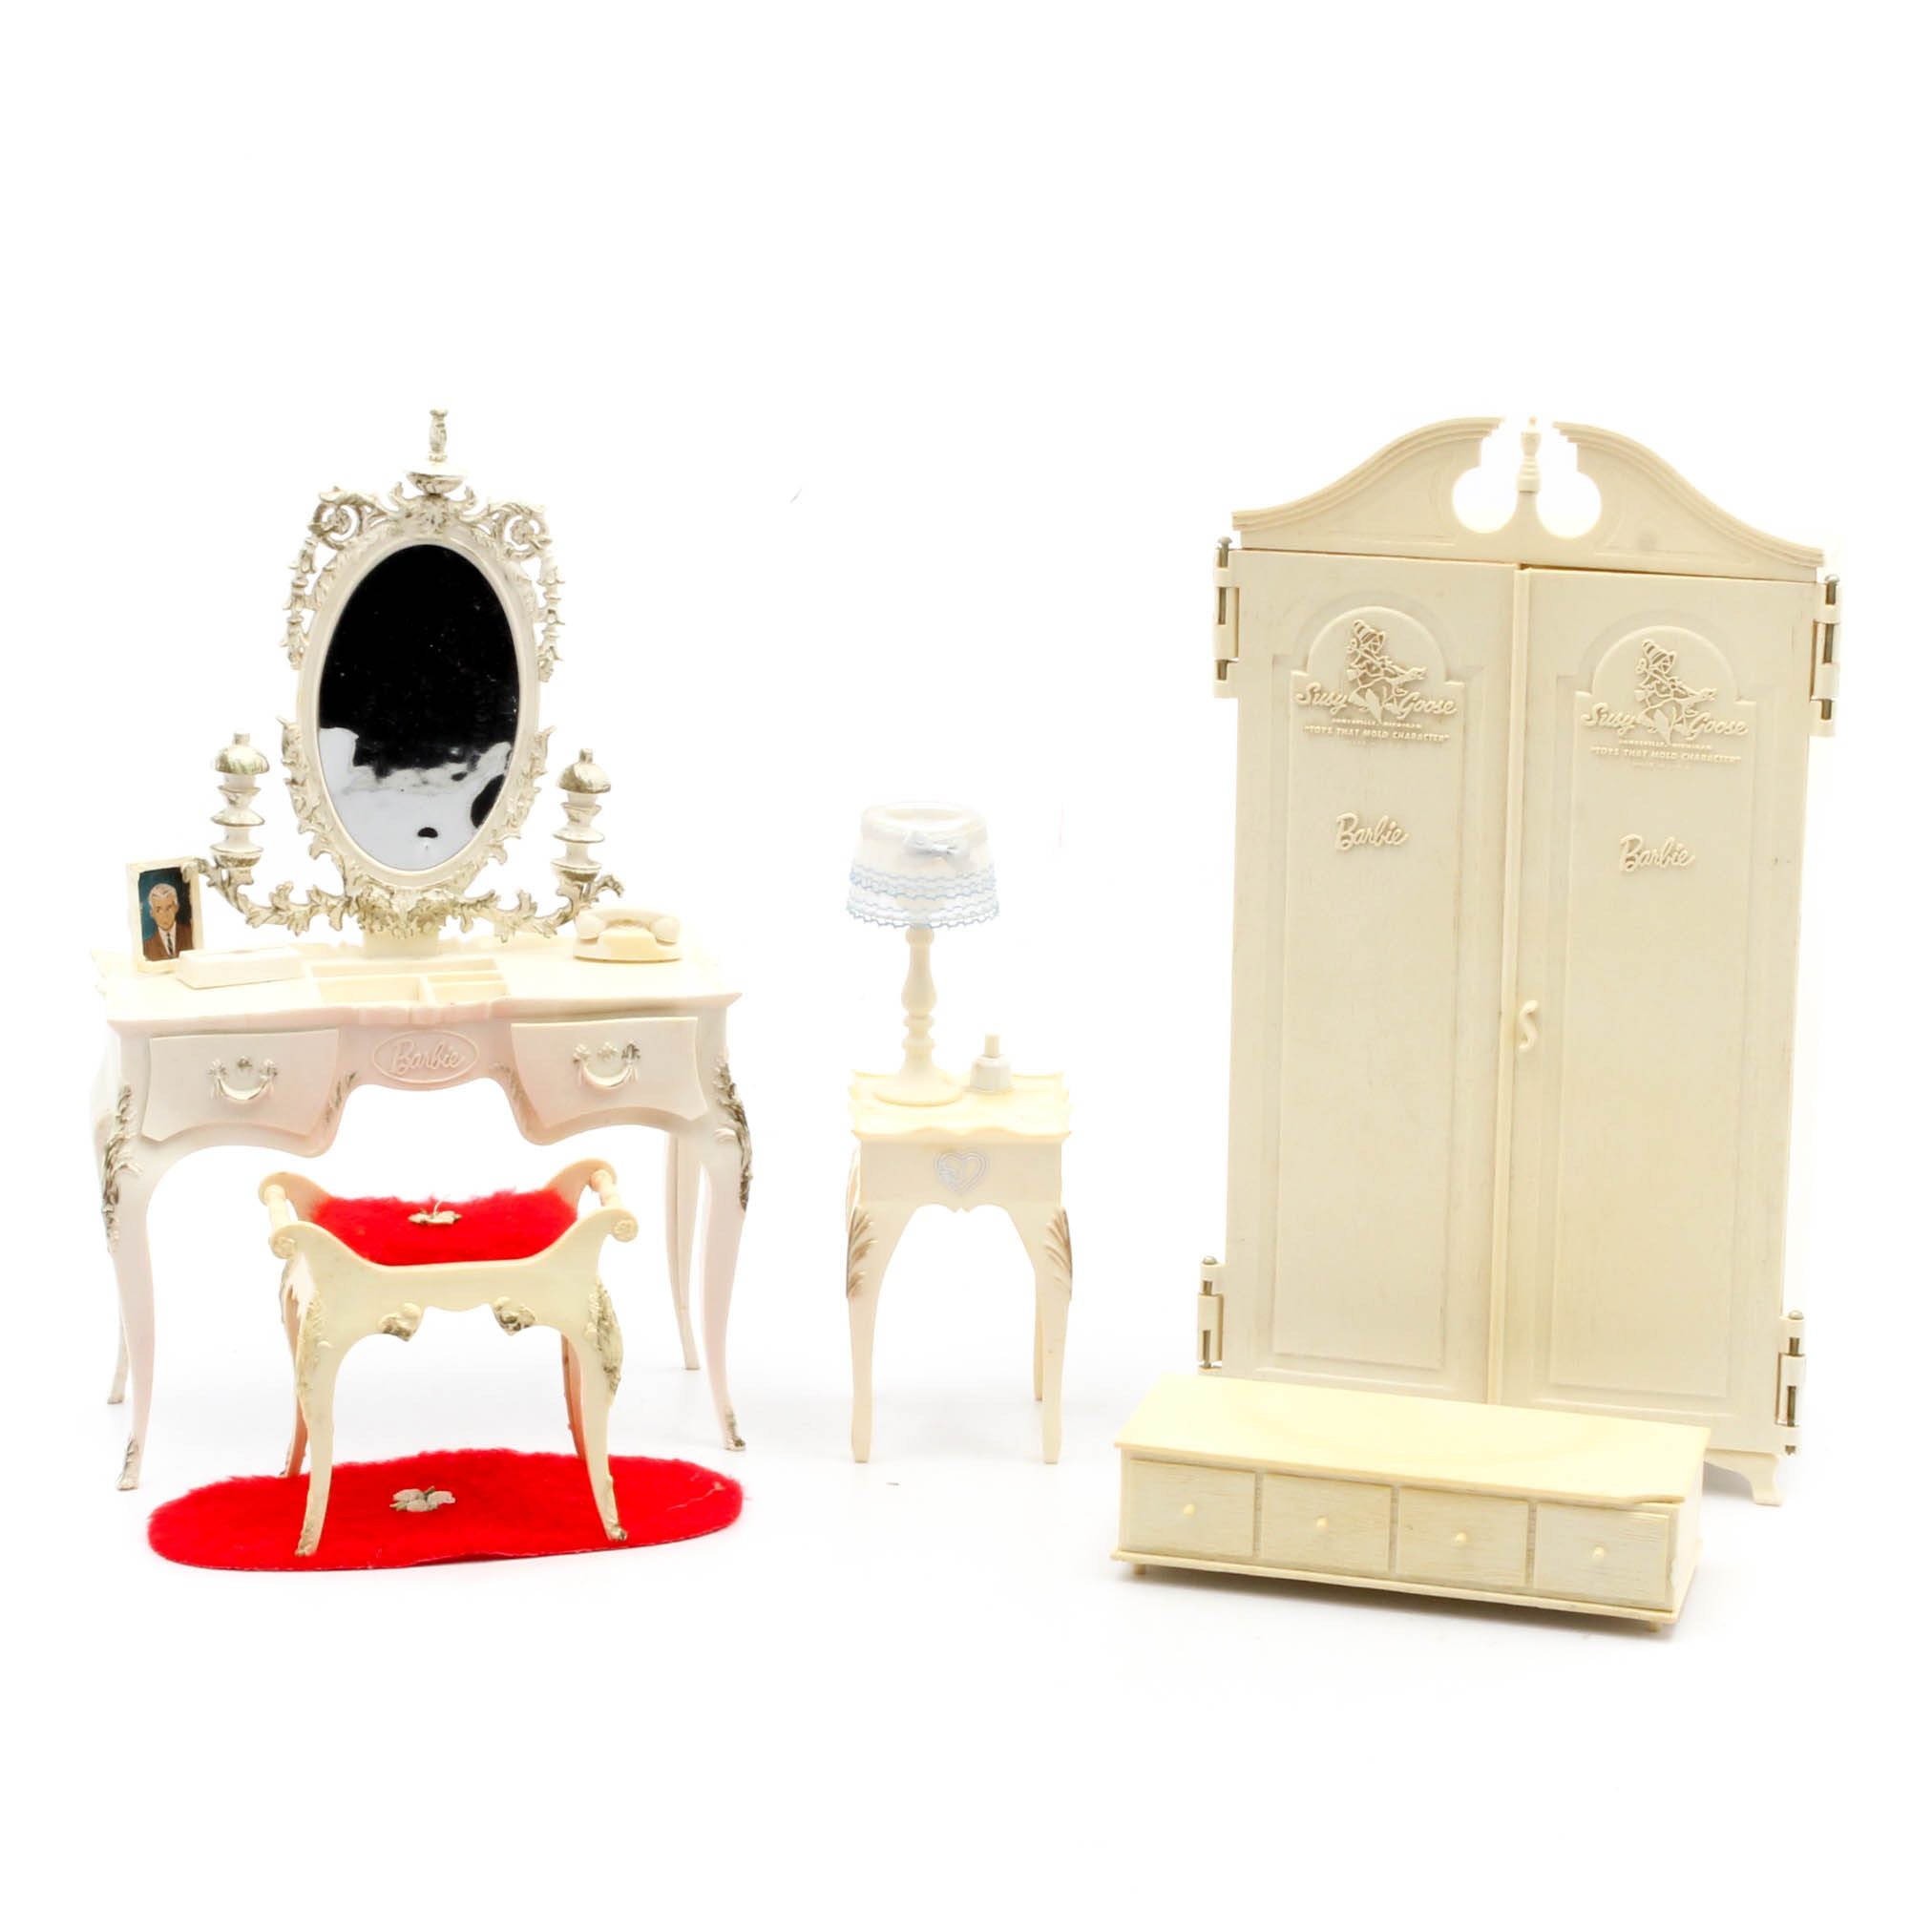 Barbie Doll Furniture by Susy Goose With Accessories, 1960s